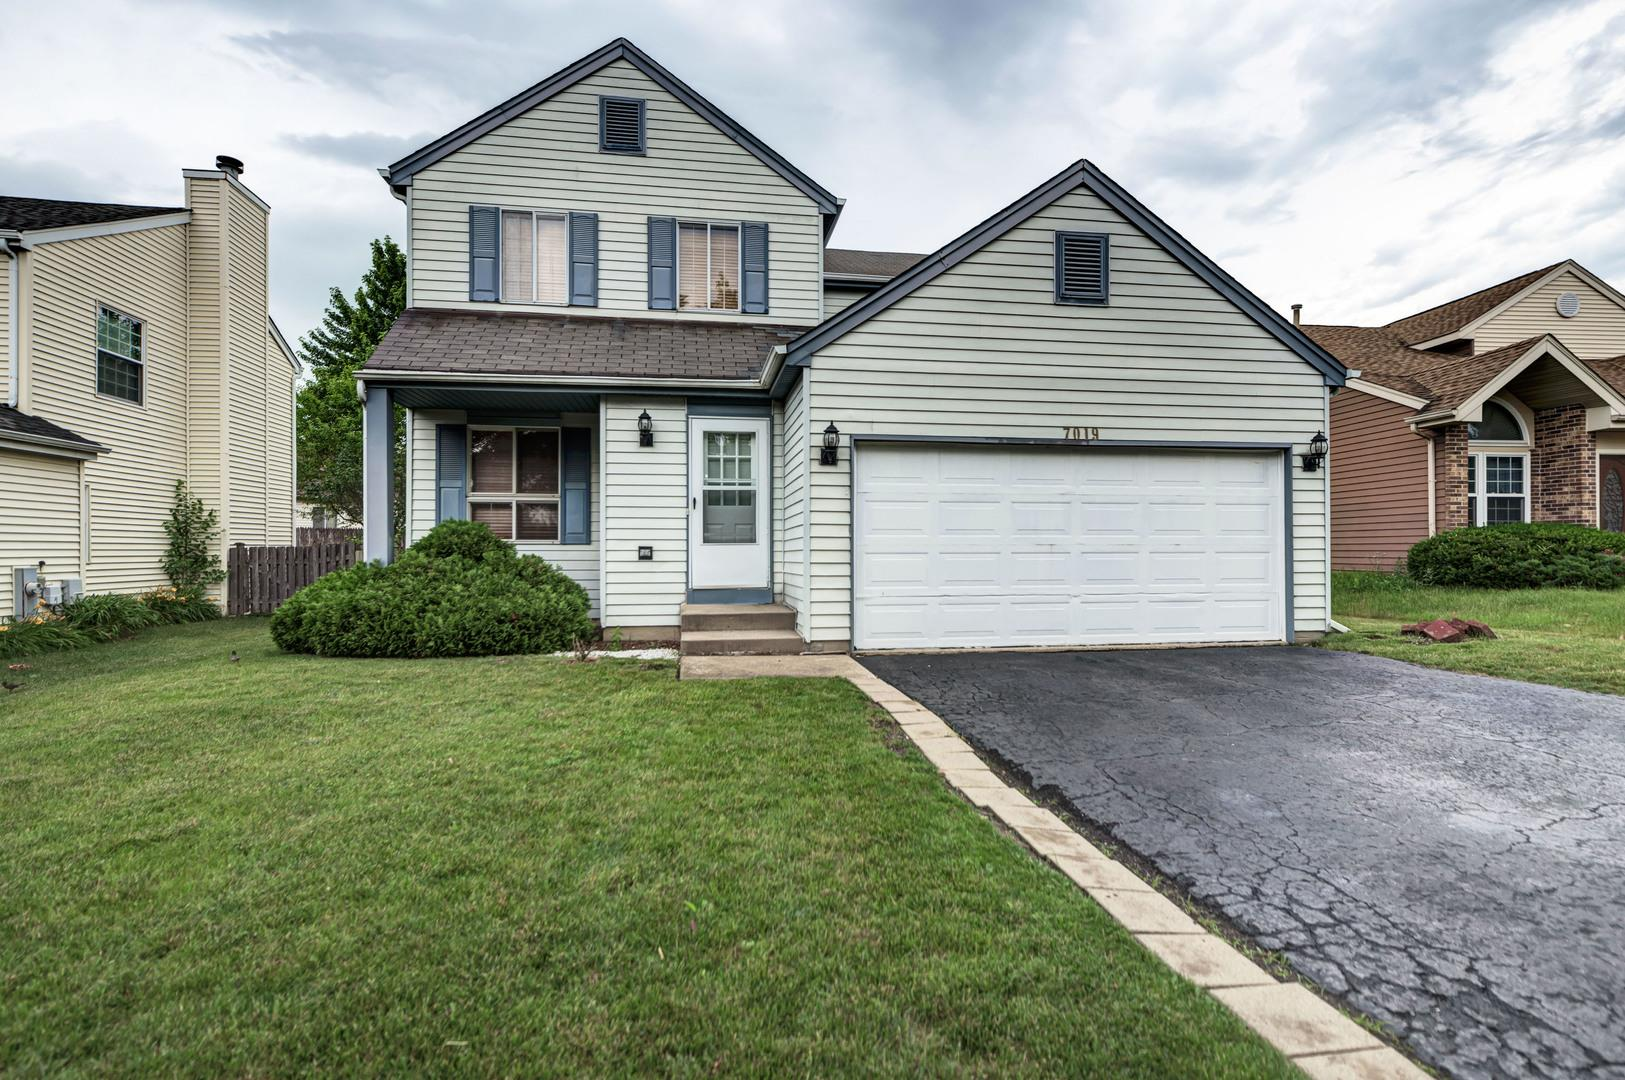 7019 Yorkshire Drive, Woodridge, IL 60517 - #: 10760349